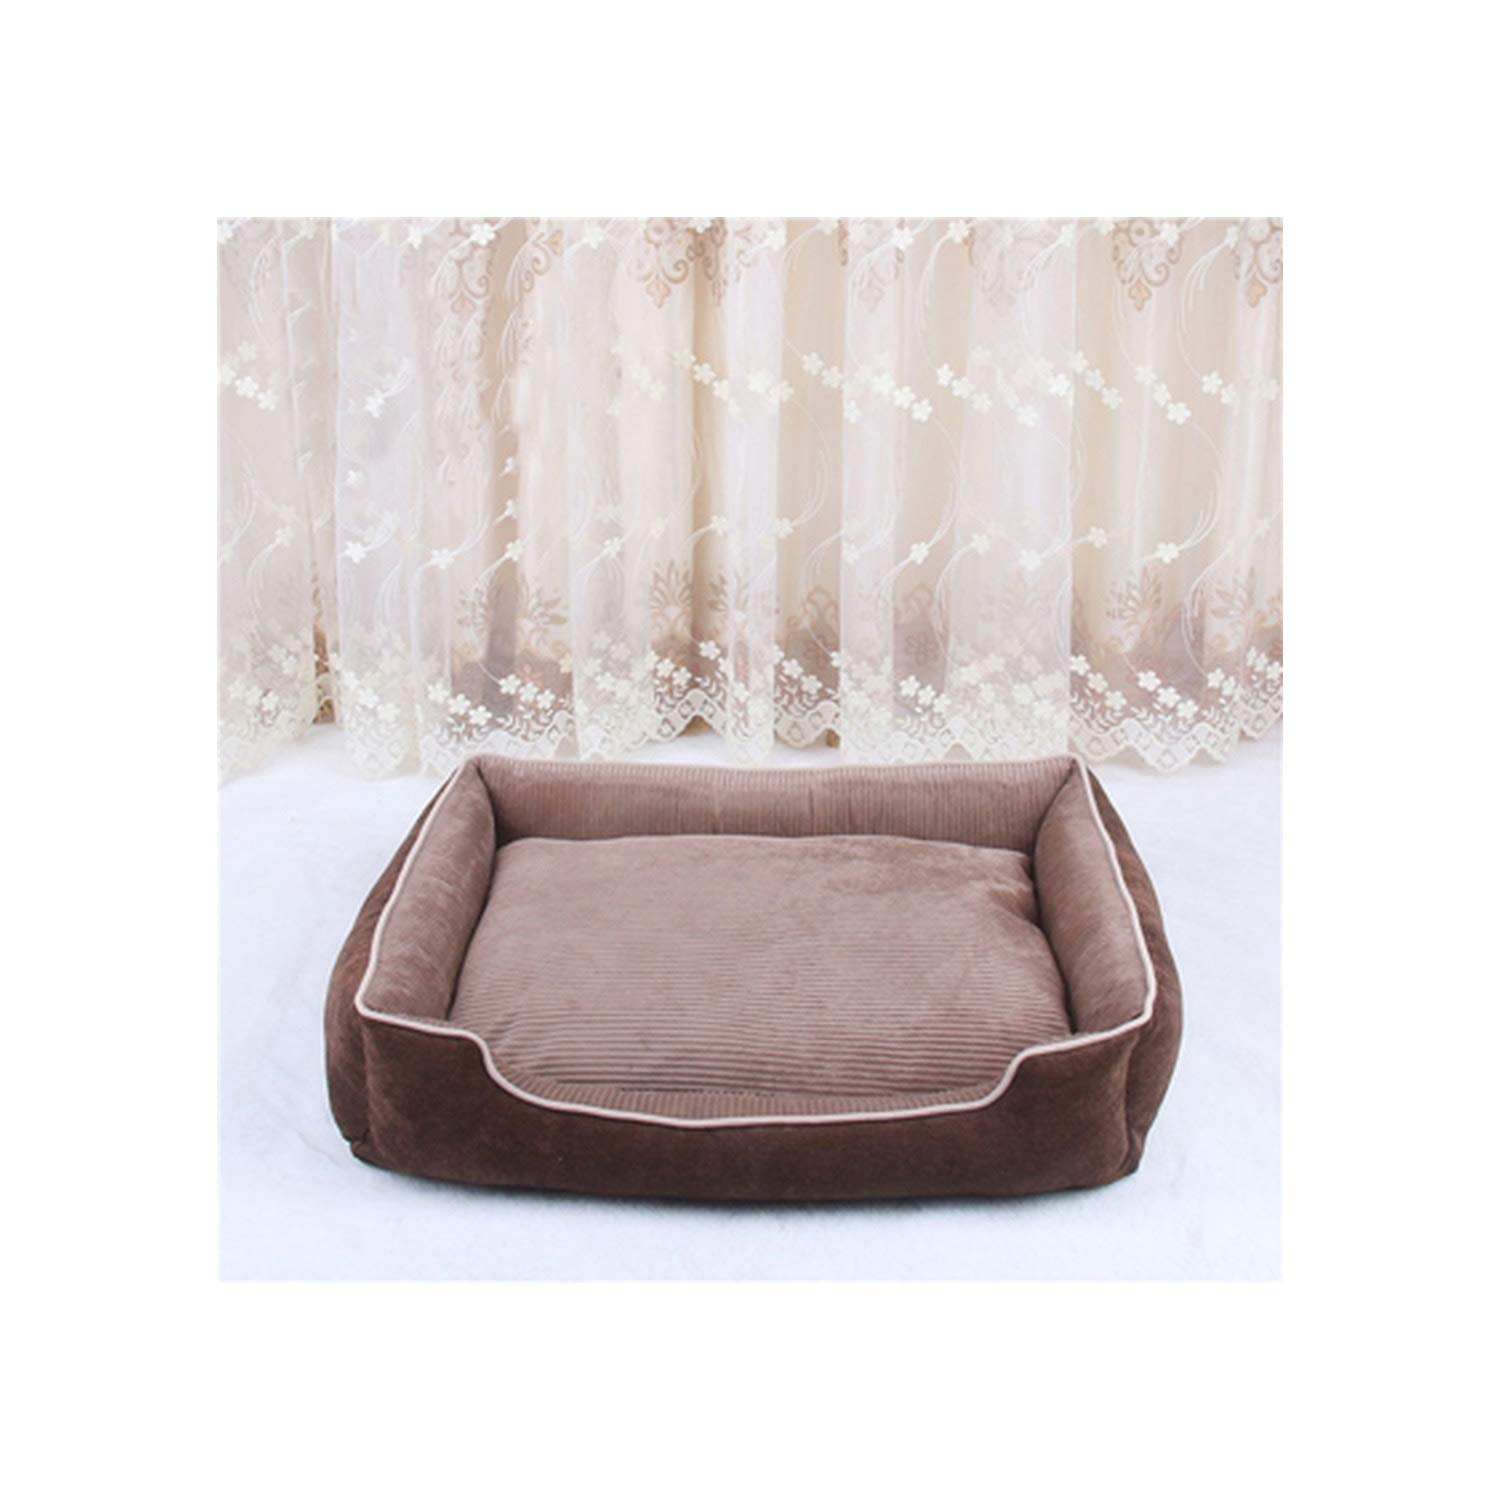 Removable Pet Dog Beds All Seasons Warming Dog Bed House Pets Sofa Mat Kennelt for Puppy Cat Pets Cushion Xs/S/M/L,Coffee,50X38X15Cm